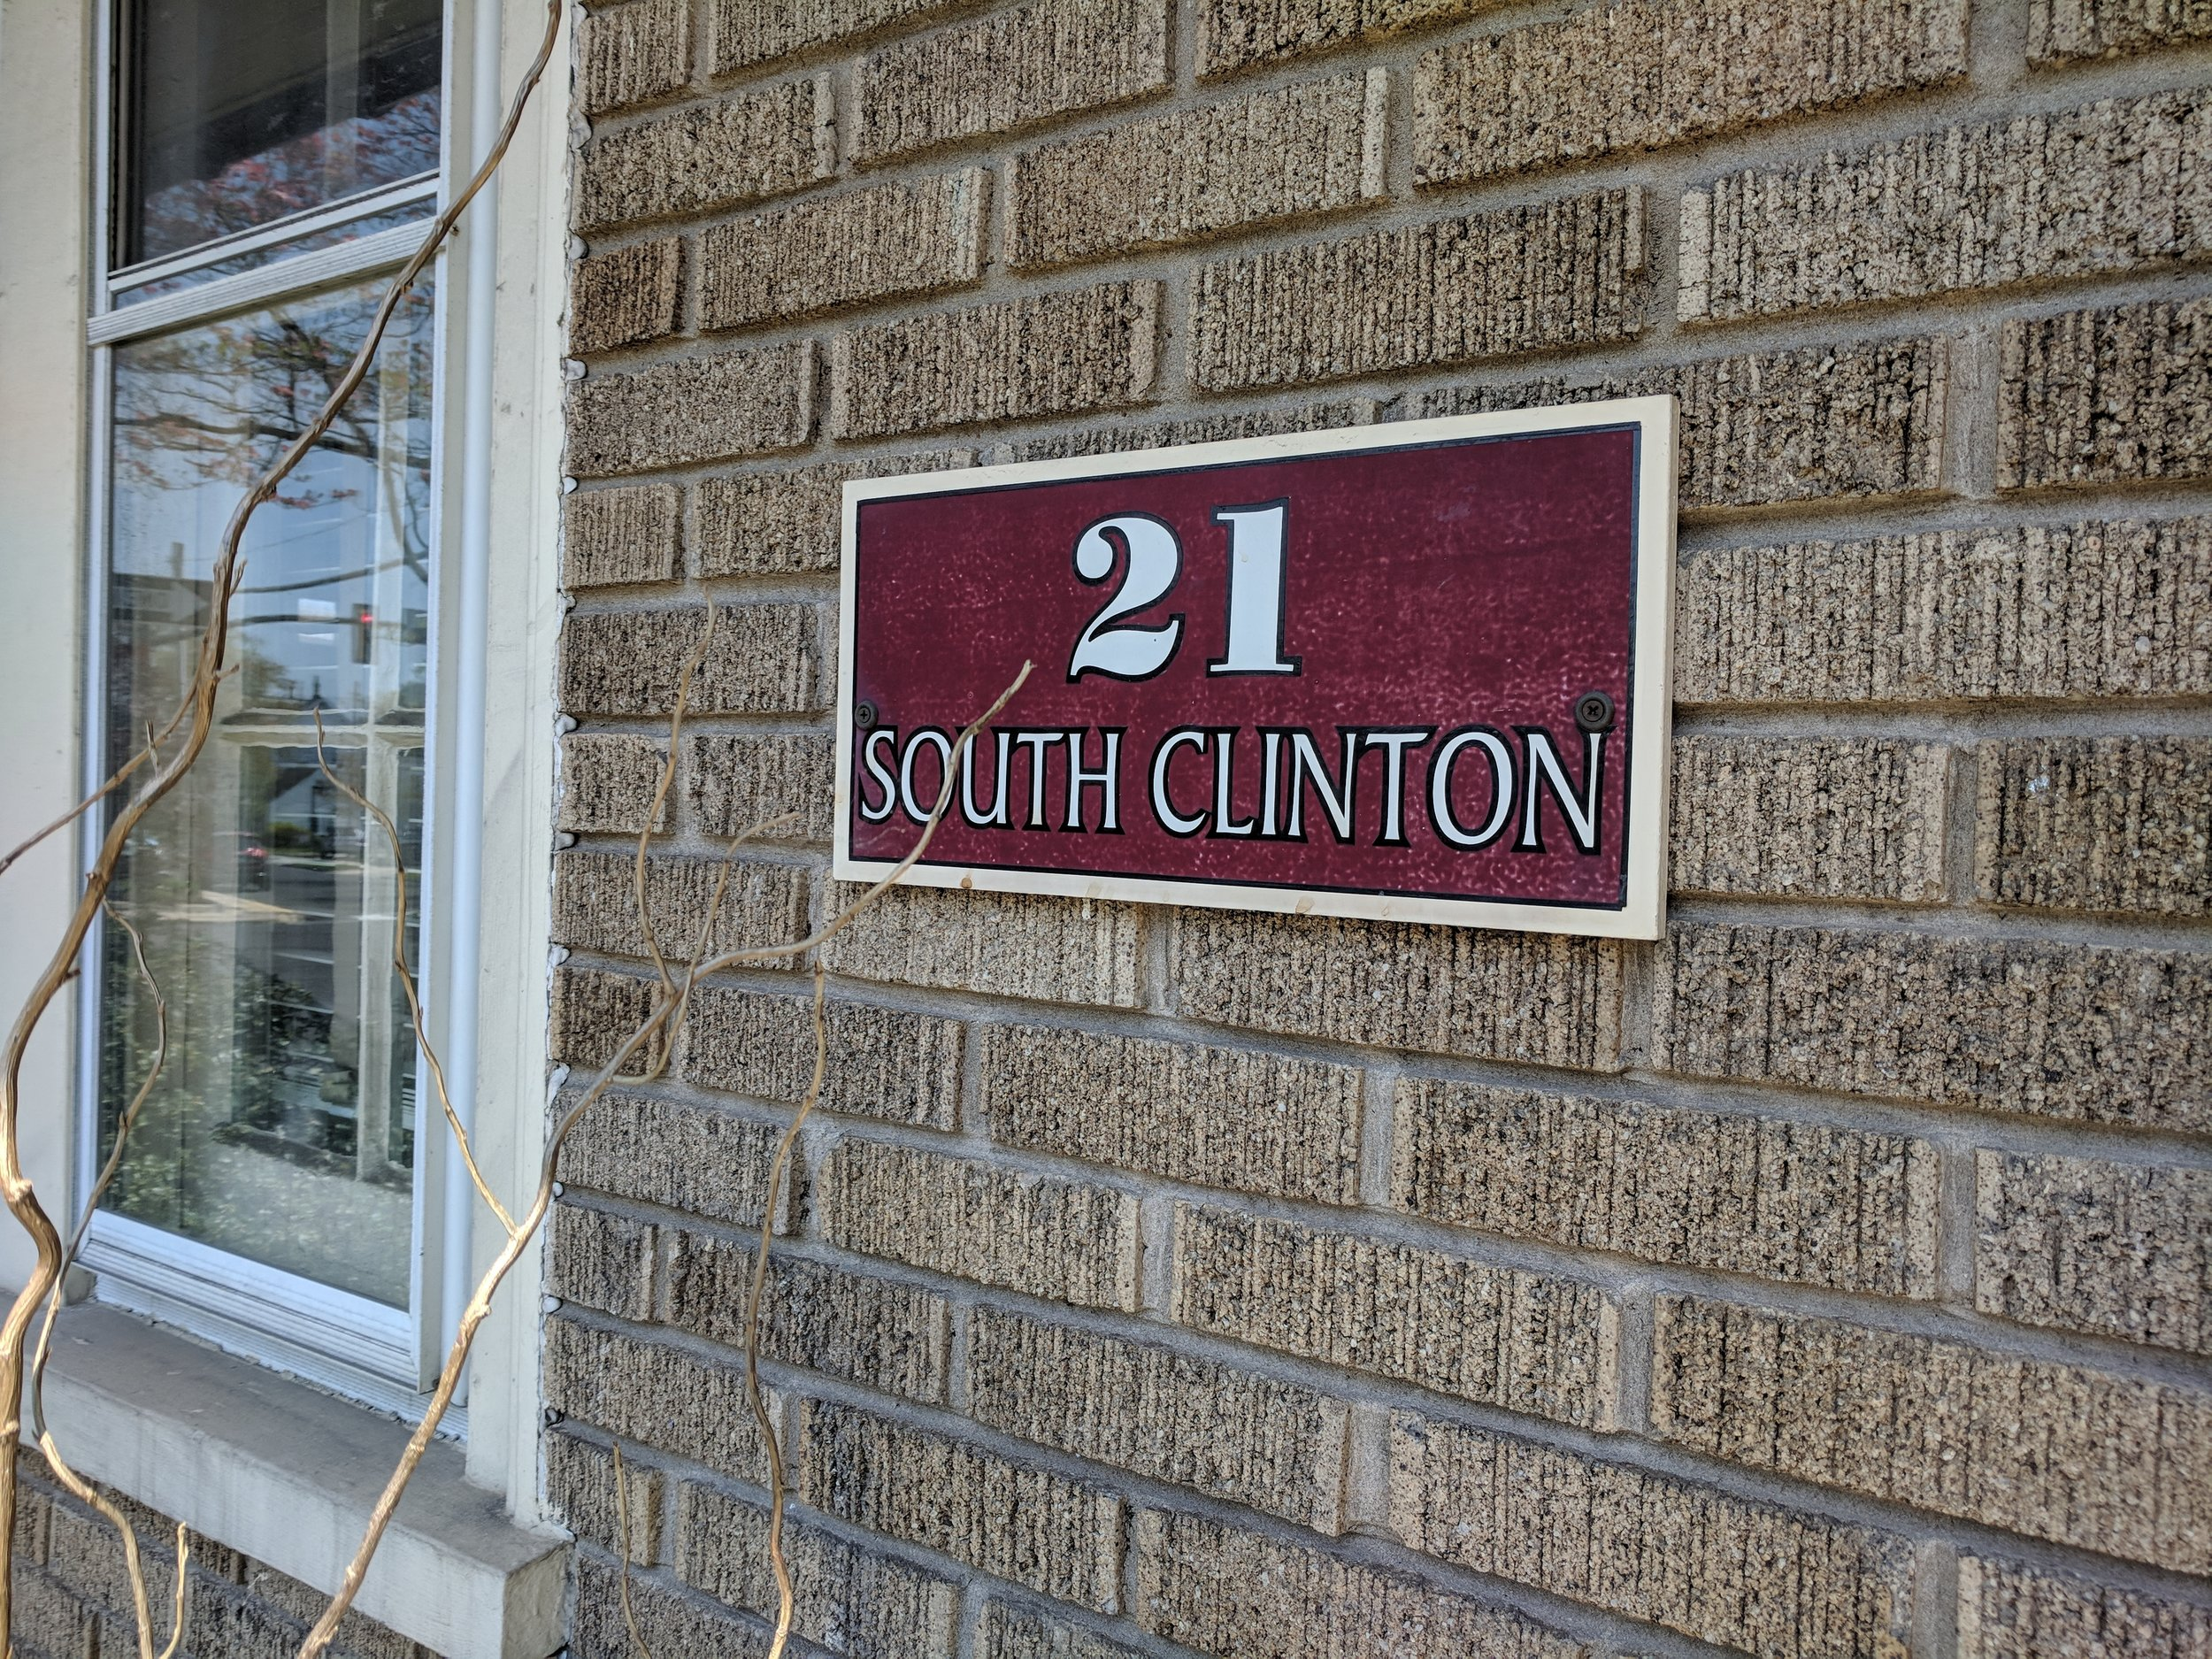 Address plate for 21 South Clinton St Doylestown